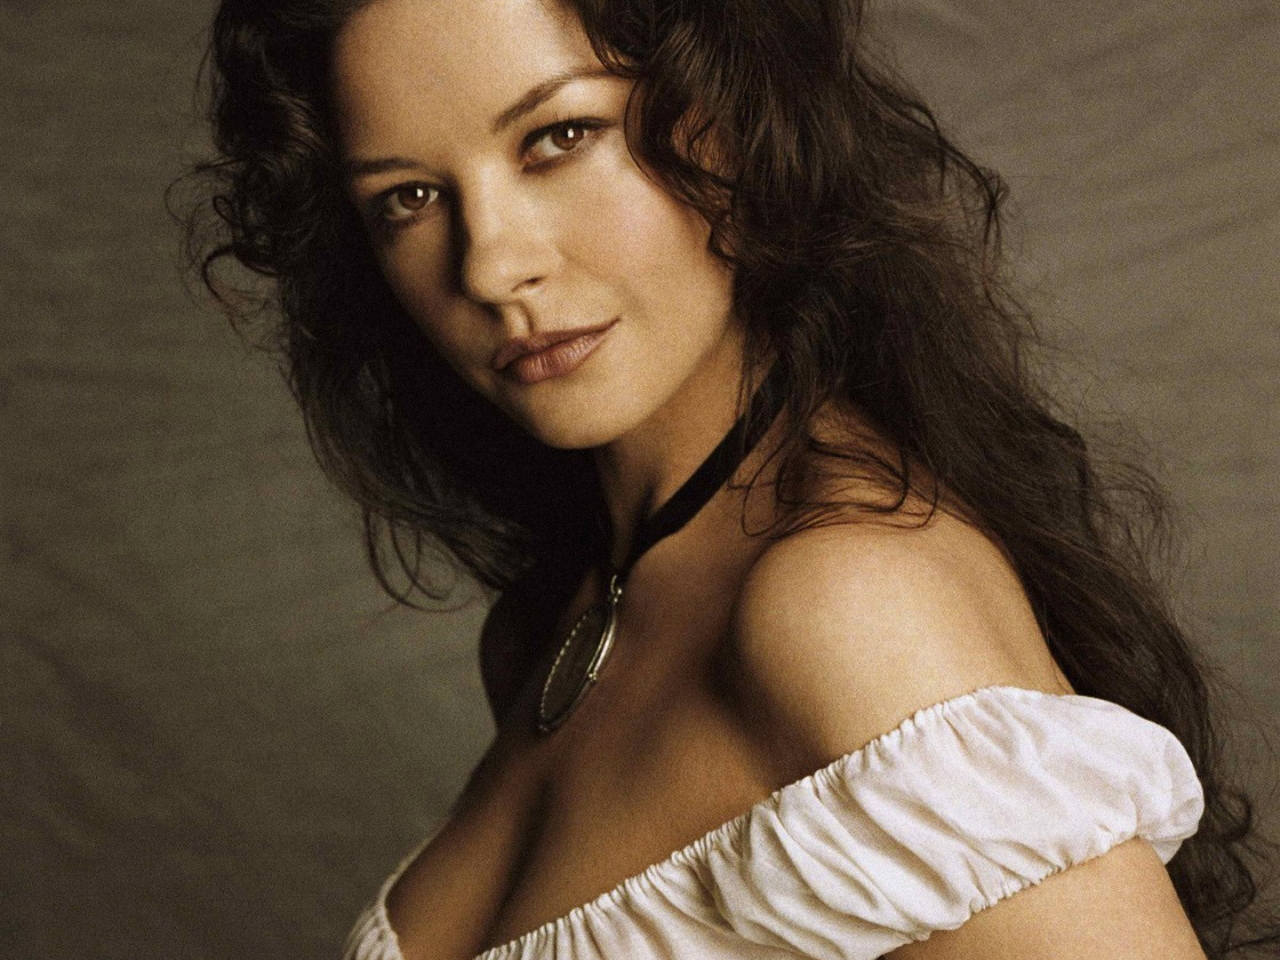 star 10: Beautiful Bri... Catherine Zeta Jones Photo